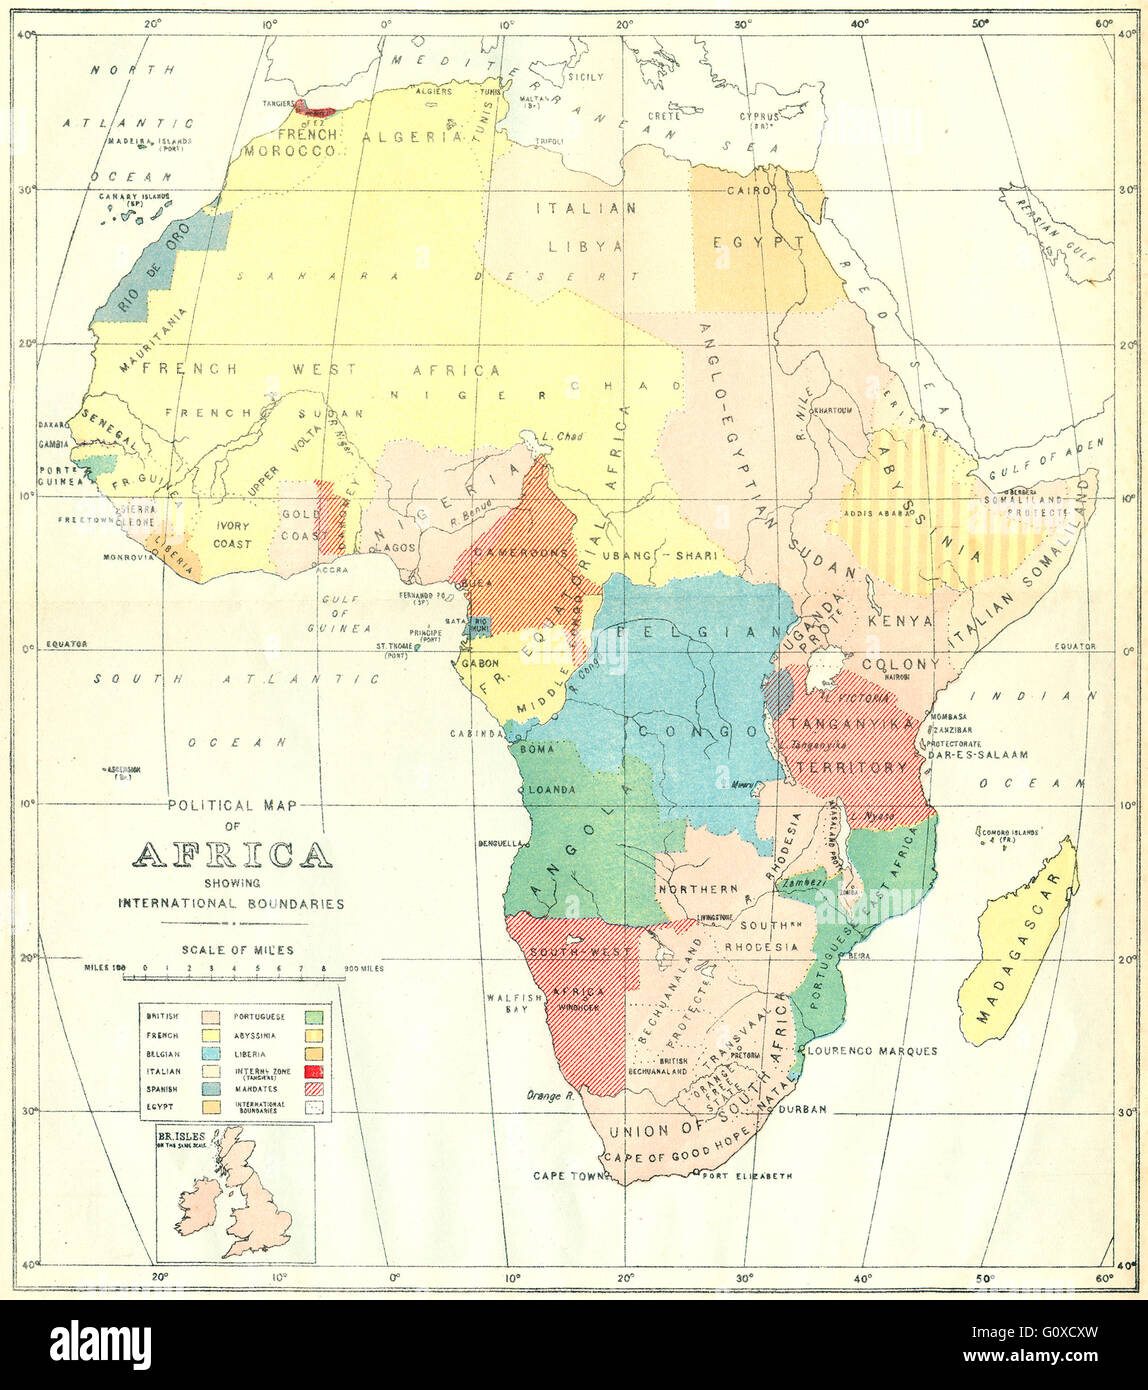 AFRICA: Political Map of showing International Boundaries, 1936